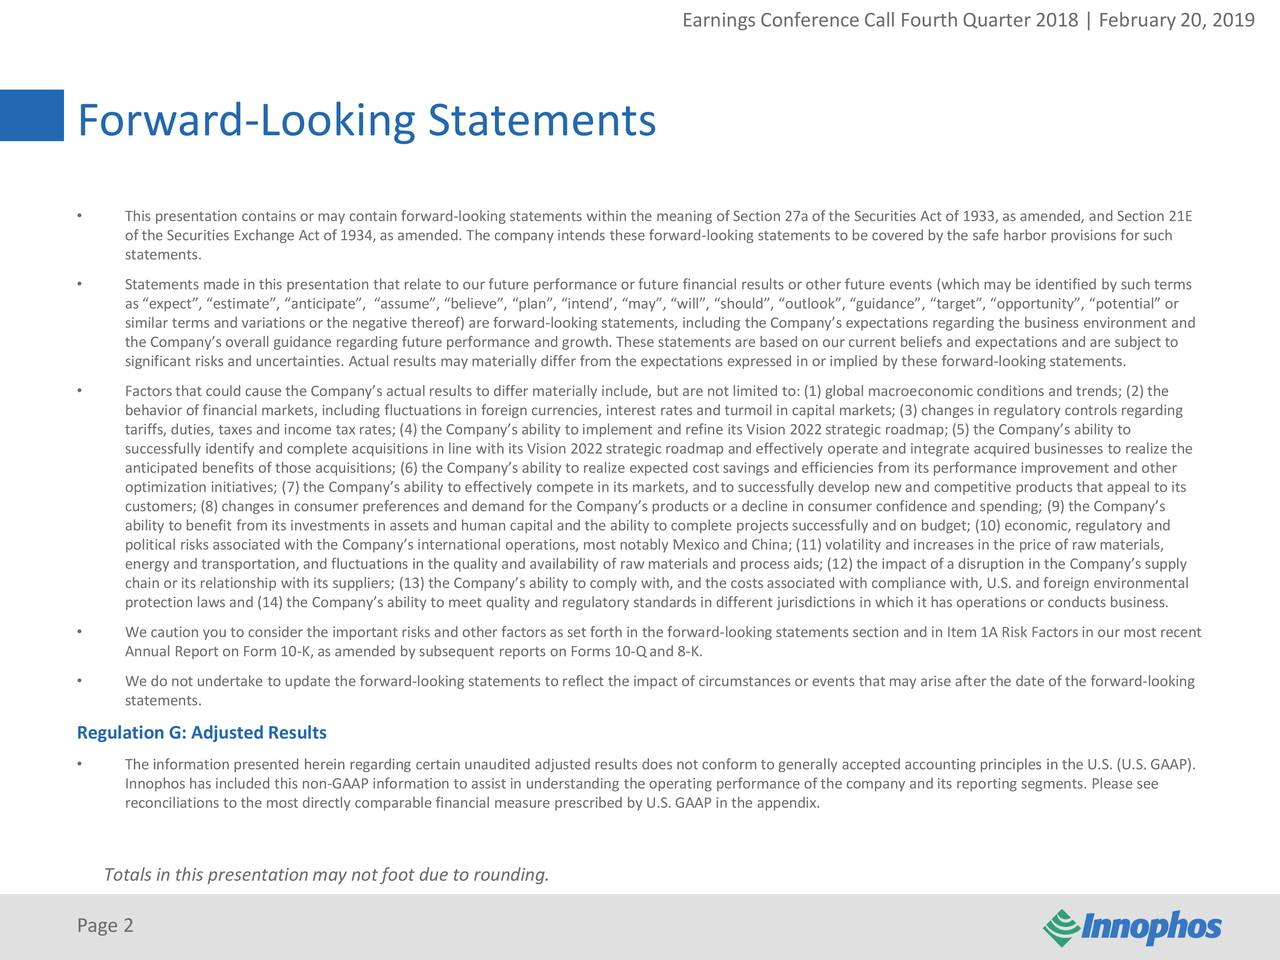 """Forward-Looking Statements • This presentation contains or may contain forward-looking statements within the meaning of Section 27a of the Securities Act of 1933, as amended, and Section 21E of the Securities Exchange Act of 1934, as amended. The company intends these forward-looking statements to be covered by the safe harbor provisions for such statements. • Statements made in this presentation that relate to our future performance or future financial results or other future events (which may be identified by such terms as """"expect"""", """"estimate"""", """"anticipate"""", """"assume"""", """"believe"""", """"plan"""", """"intend', """"may"""", """"will"""", """"should"""", """"outlook"""", """"guidance"""", """"target"""", """"opportunity"""", """"potential"""" or similar terms and variations or the negative thereof) are forward-looking statements, including the Company's expectations regarding the business environment and the Company's overall guidance regarding future performance and growth. These statements are based on our current beliefs and expectations and are subject to significant risks and uncertainties. Actual results may materially differ from the expectations expressed in or implied by these forward-looking statements. • Factorsthat could cause the Company's actual results to differ materially include, but are not limited to: (1) global macroeconomic conditions and trends; (2) the behavior of financial markets, including fluctuations in foreign currencies, interest rates and turmoil in capital markets; (3) changes in regulatory controls regarding tariffs, duties, taxes and income tax rates; (4) the Company's ability to implement and refine its Vision 2022strategic roadmap; (5) the Company's ability to successfully identify and complete acquisitions in line with its Vision 2022strategic roadmap and effectively operate and integrate acquired businesses to realize the anticipated benefits of those acquisitions; (6) the Company's ability to realize expected costsavings and efficiencies from its performance improvement and other optimiza"""